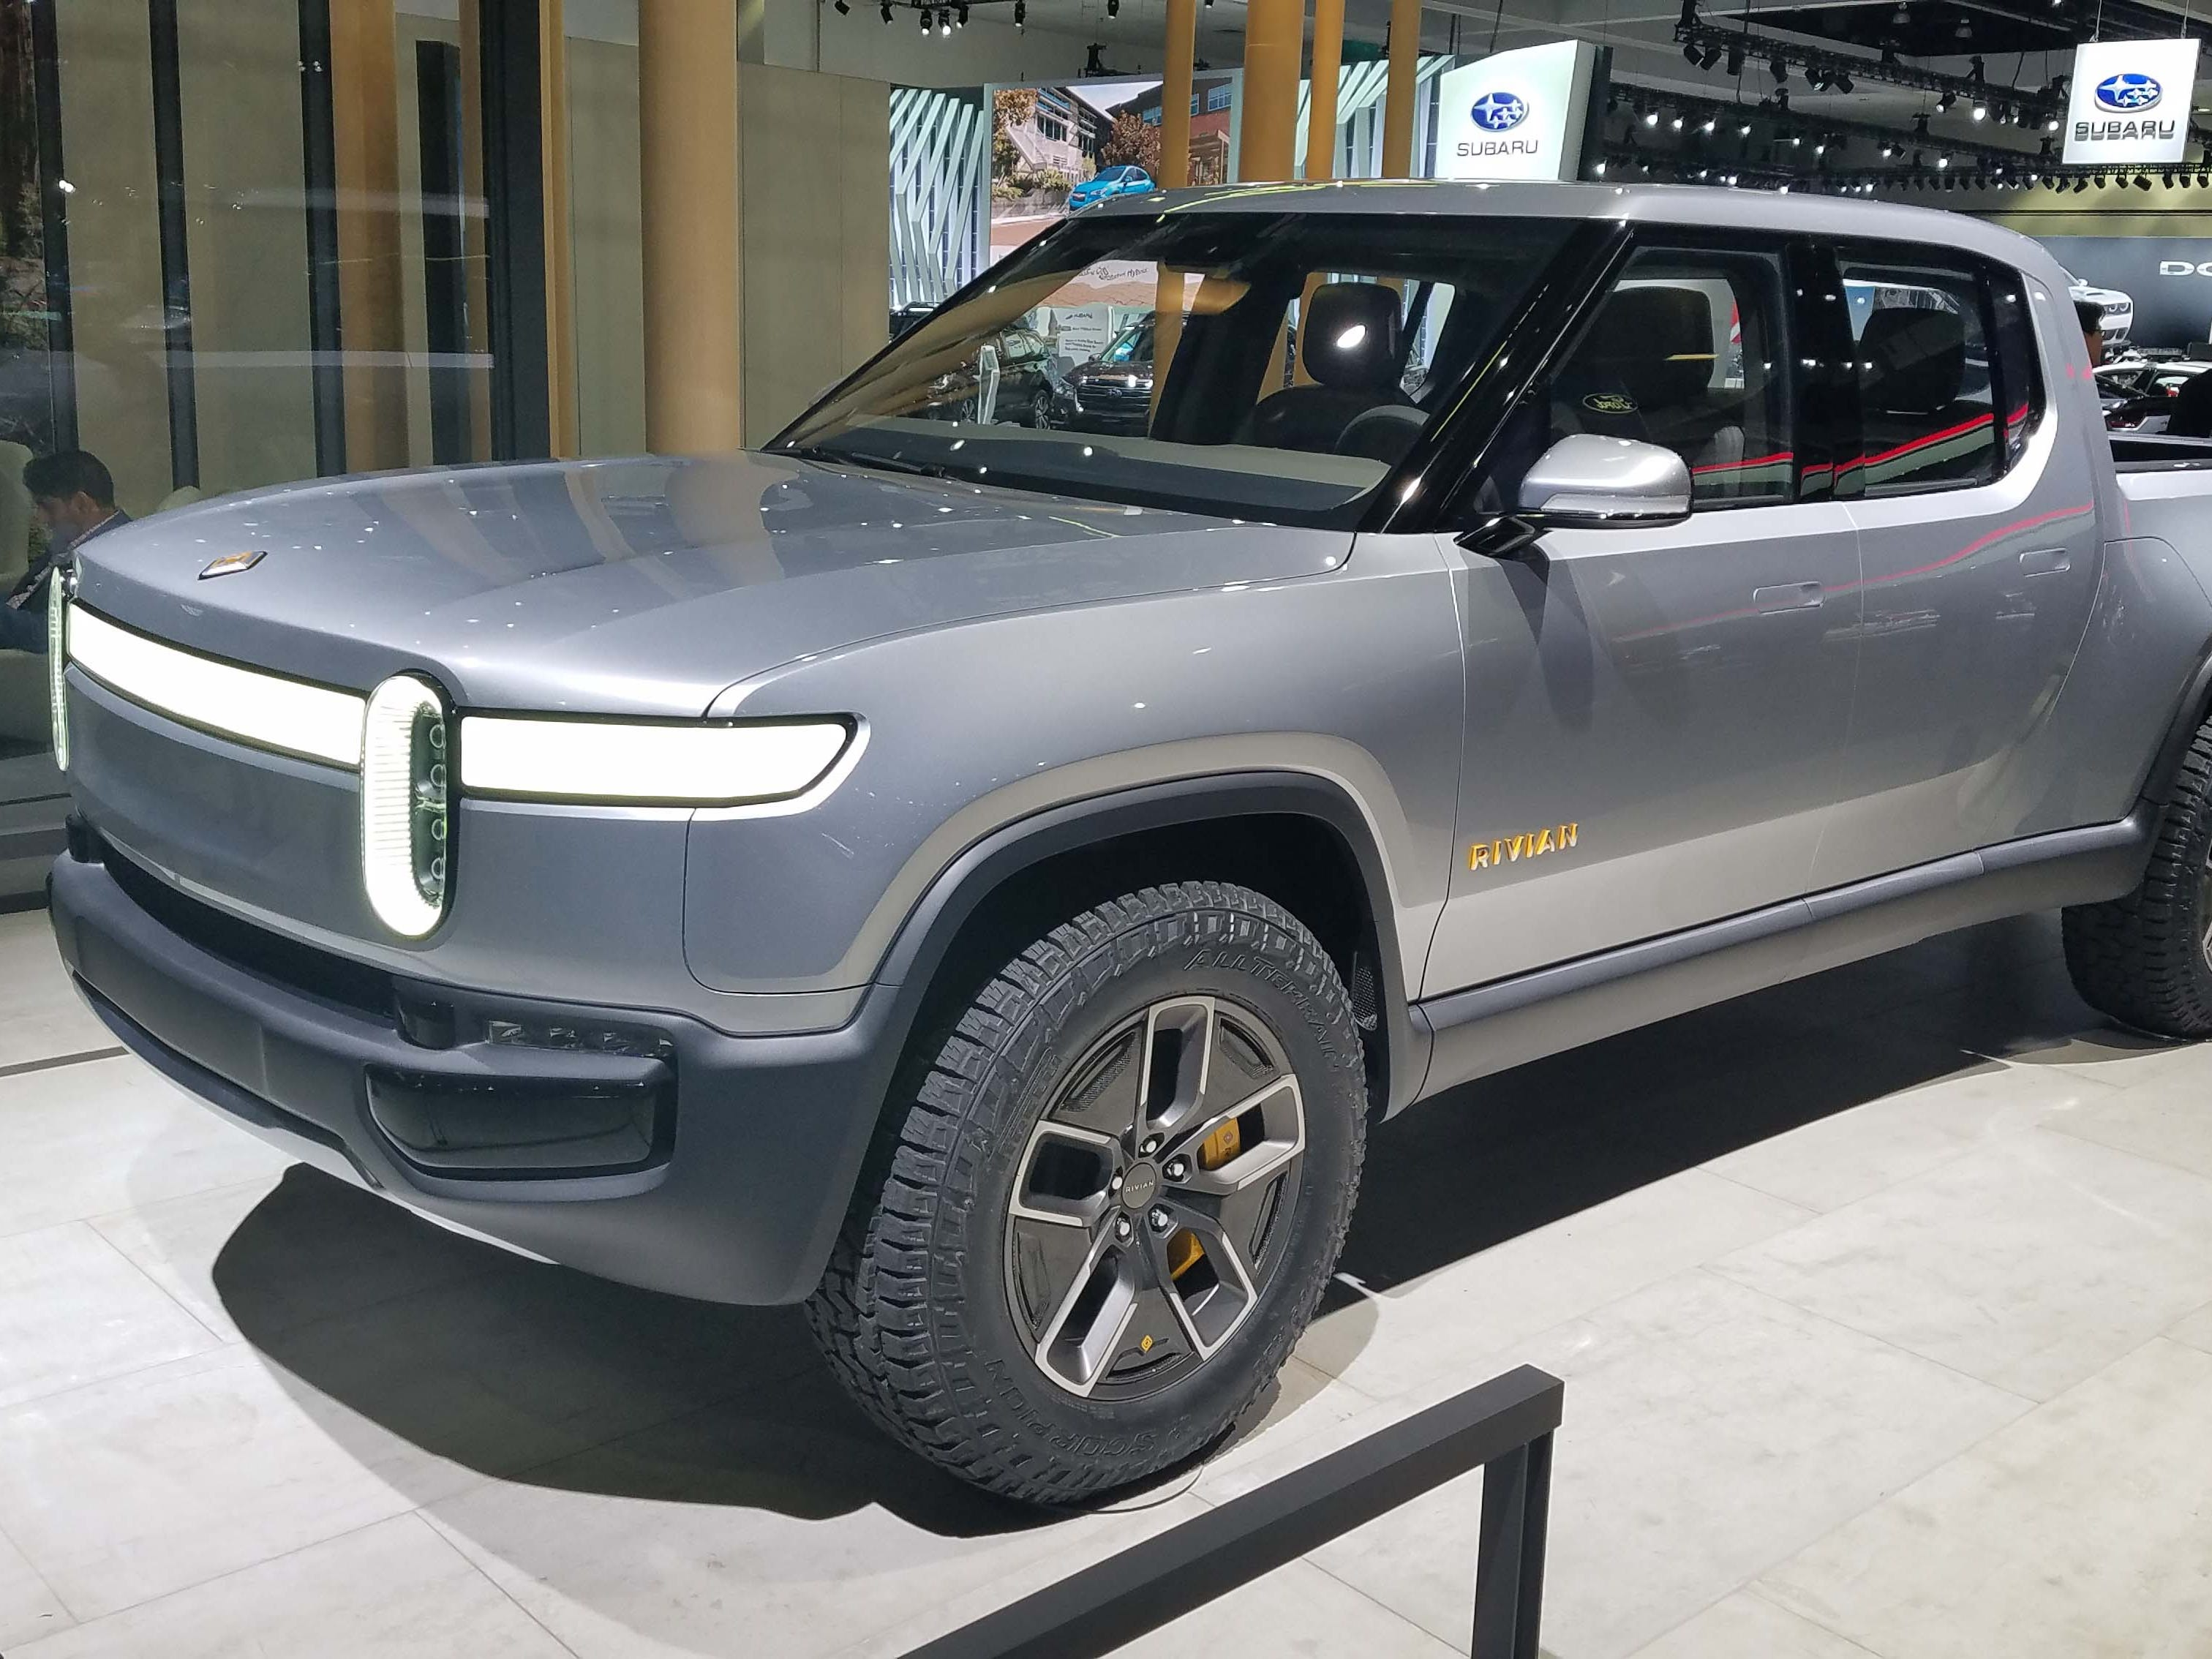 Electric truckmaker Rivian introduced the R1T pickup EV at the Los Angeles auto show last November. GM and Amazon are reportedly negotiating an investment stake in the automaker.